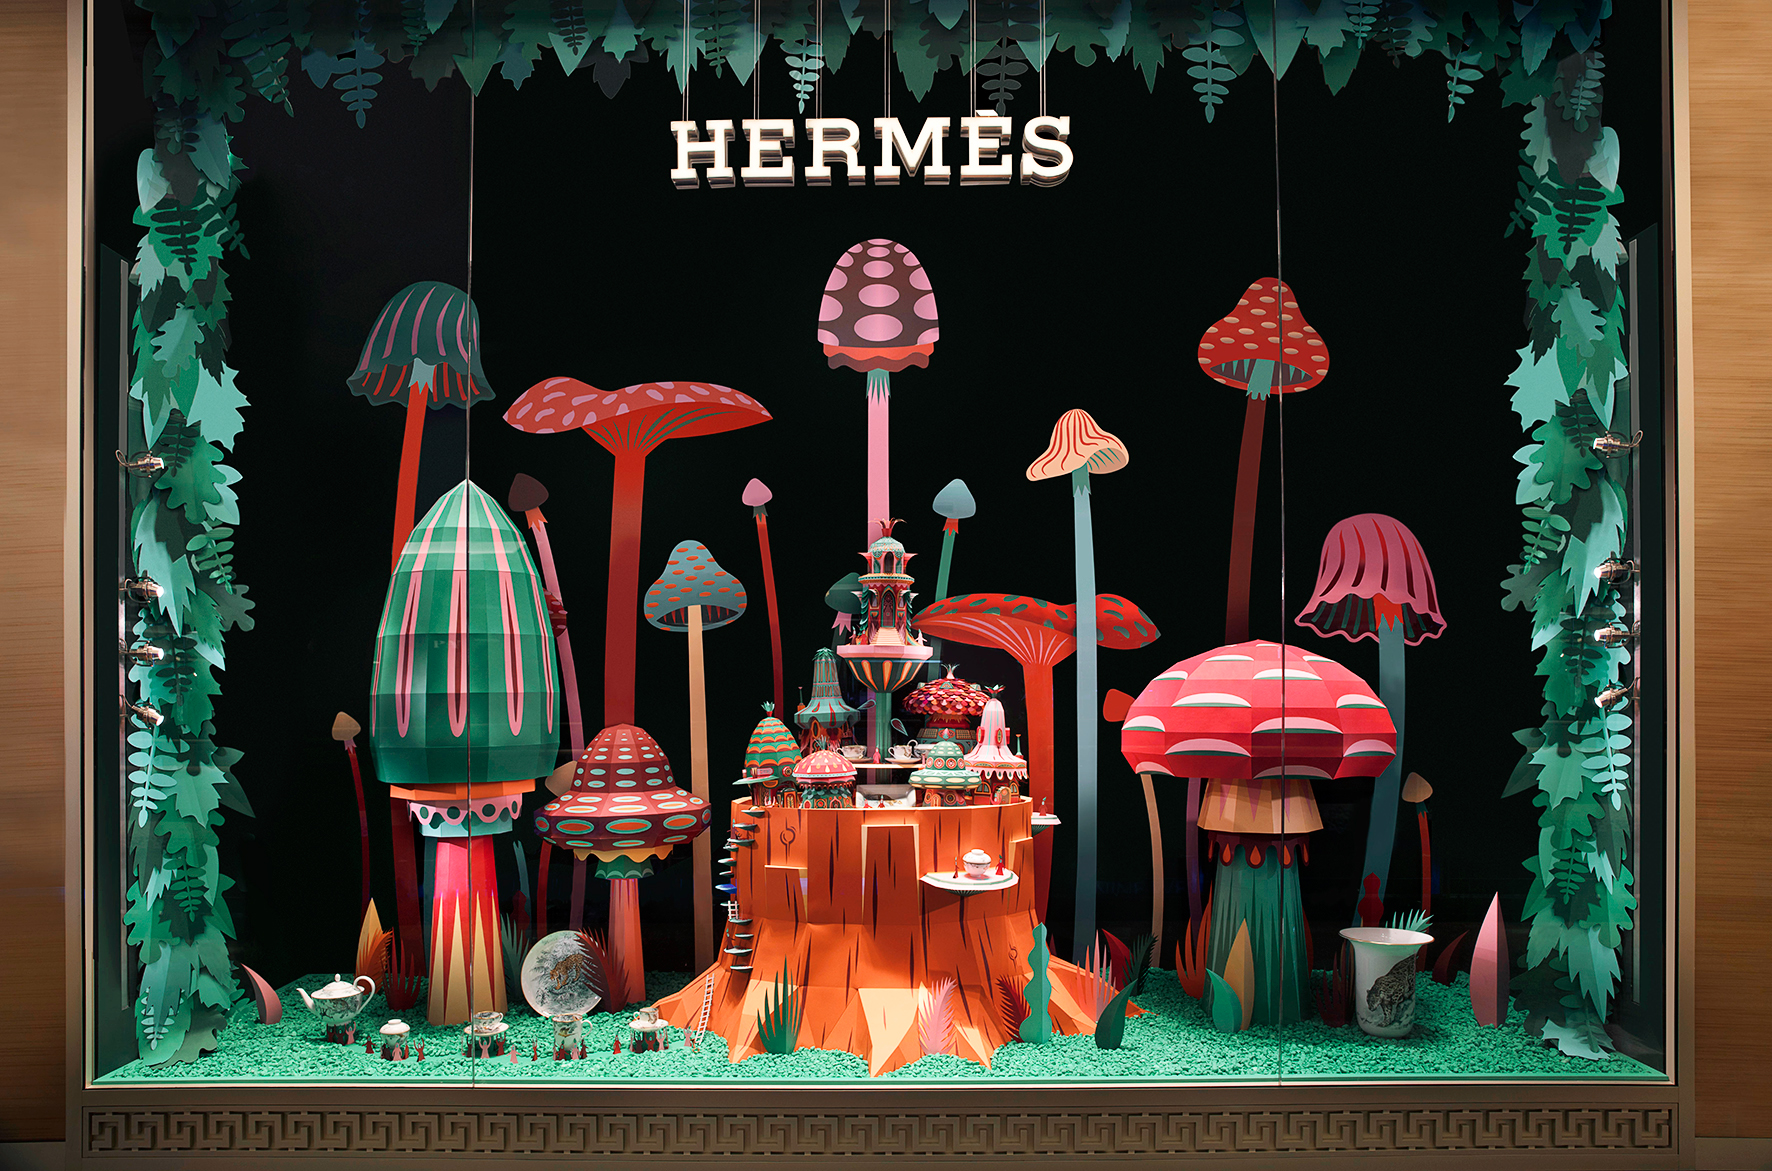 Fantastic Miniature Worlds of Nature Bursting with Color for Hermès Window Display in Dubai